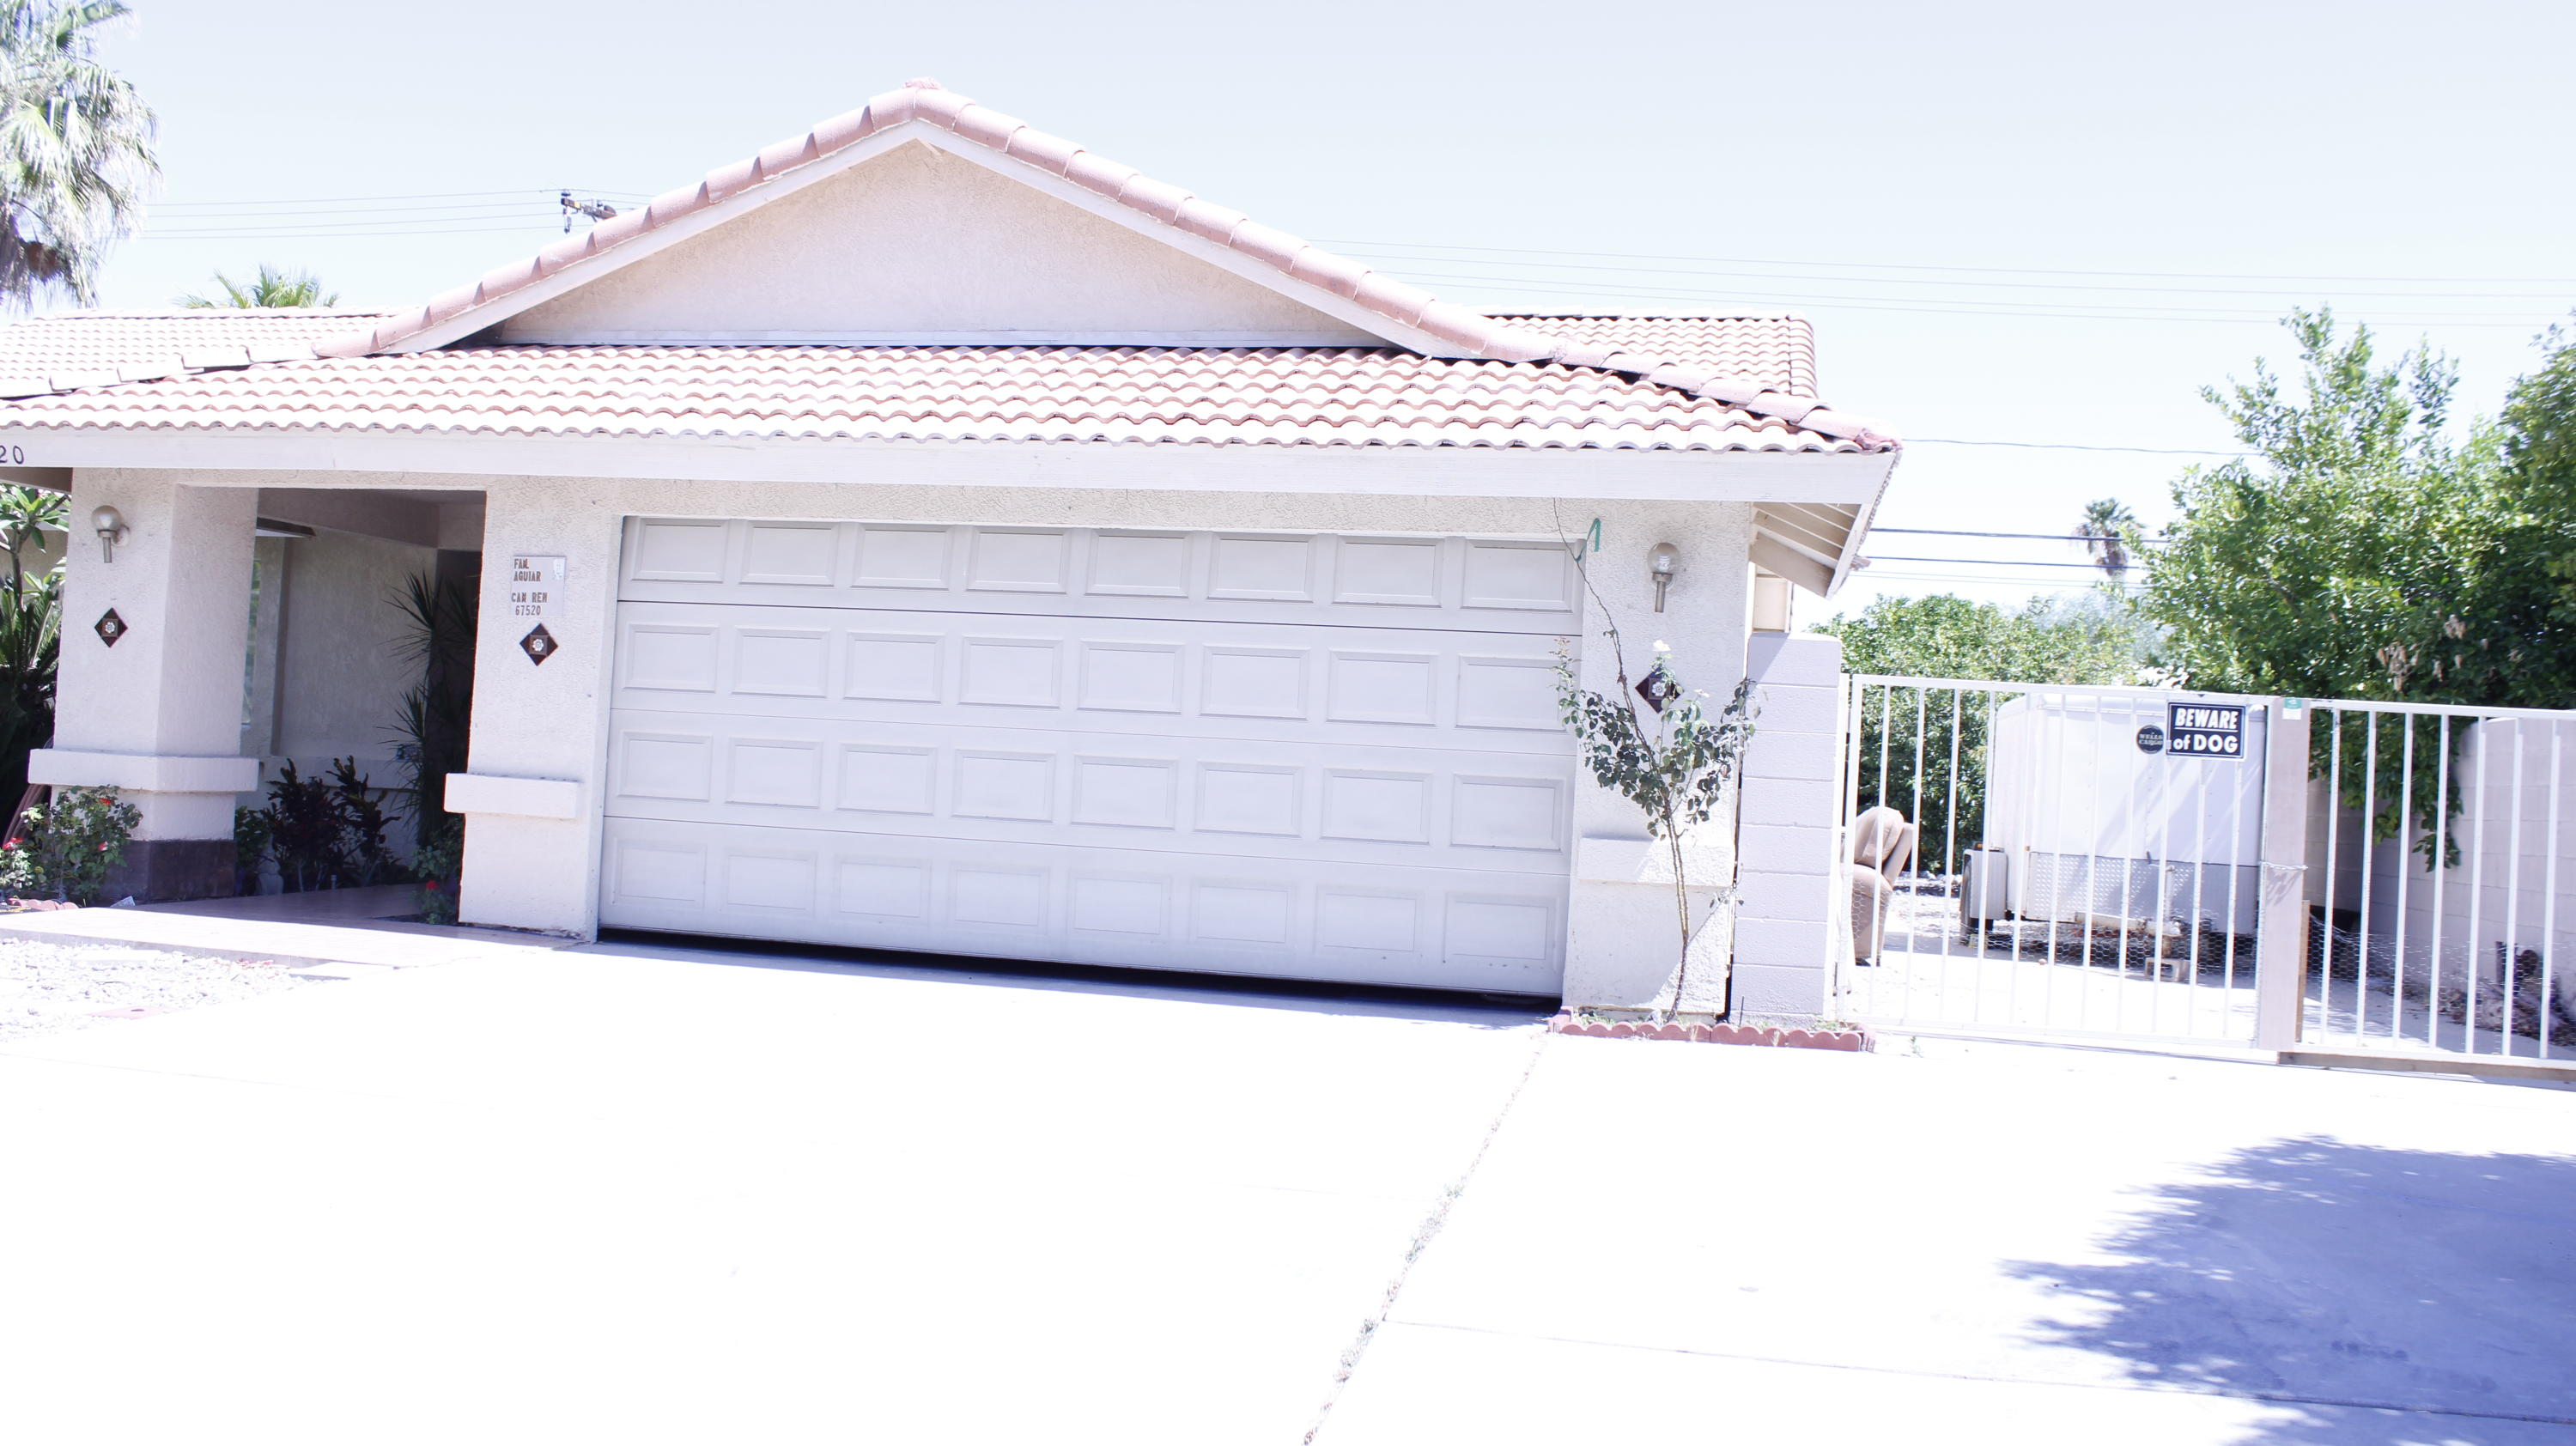 67520 Vista Chino, Cathedral City, California 92234, 3 Bedrooms Bedrooms, ,2 BathroomsBathrooms,Residential,For Sale,67520 Vista Chino,219044758